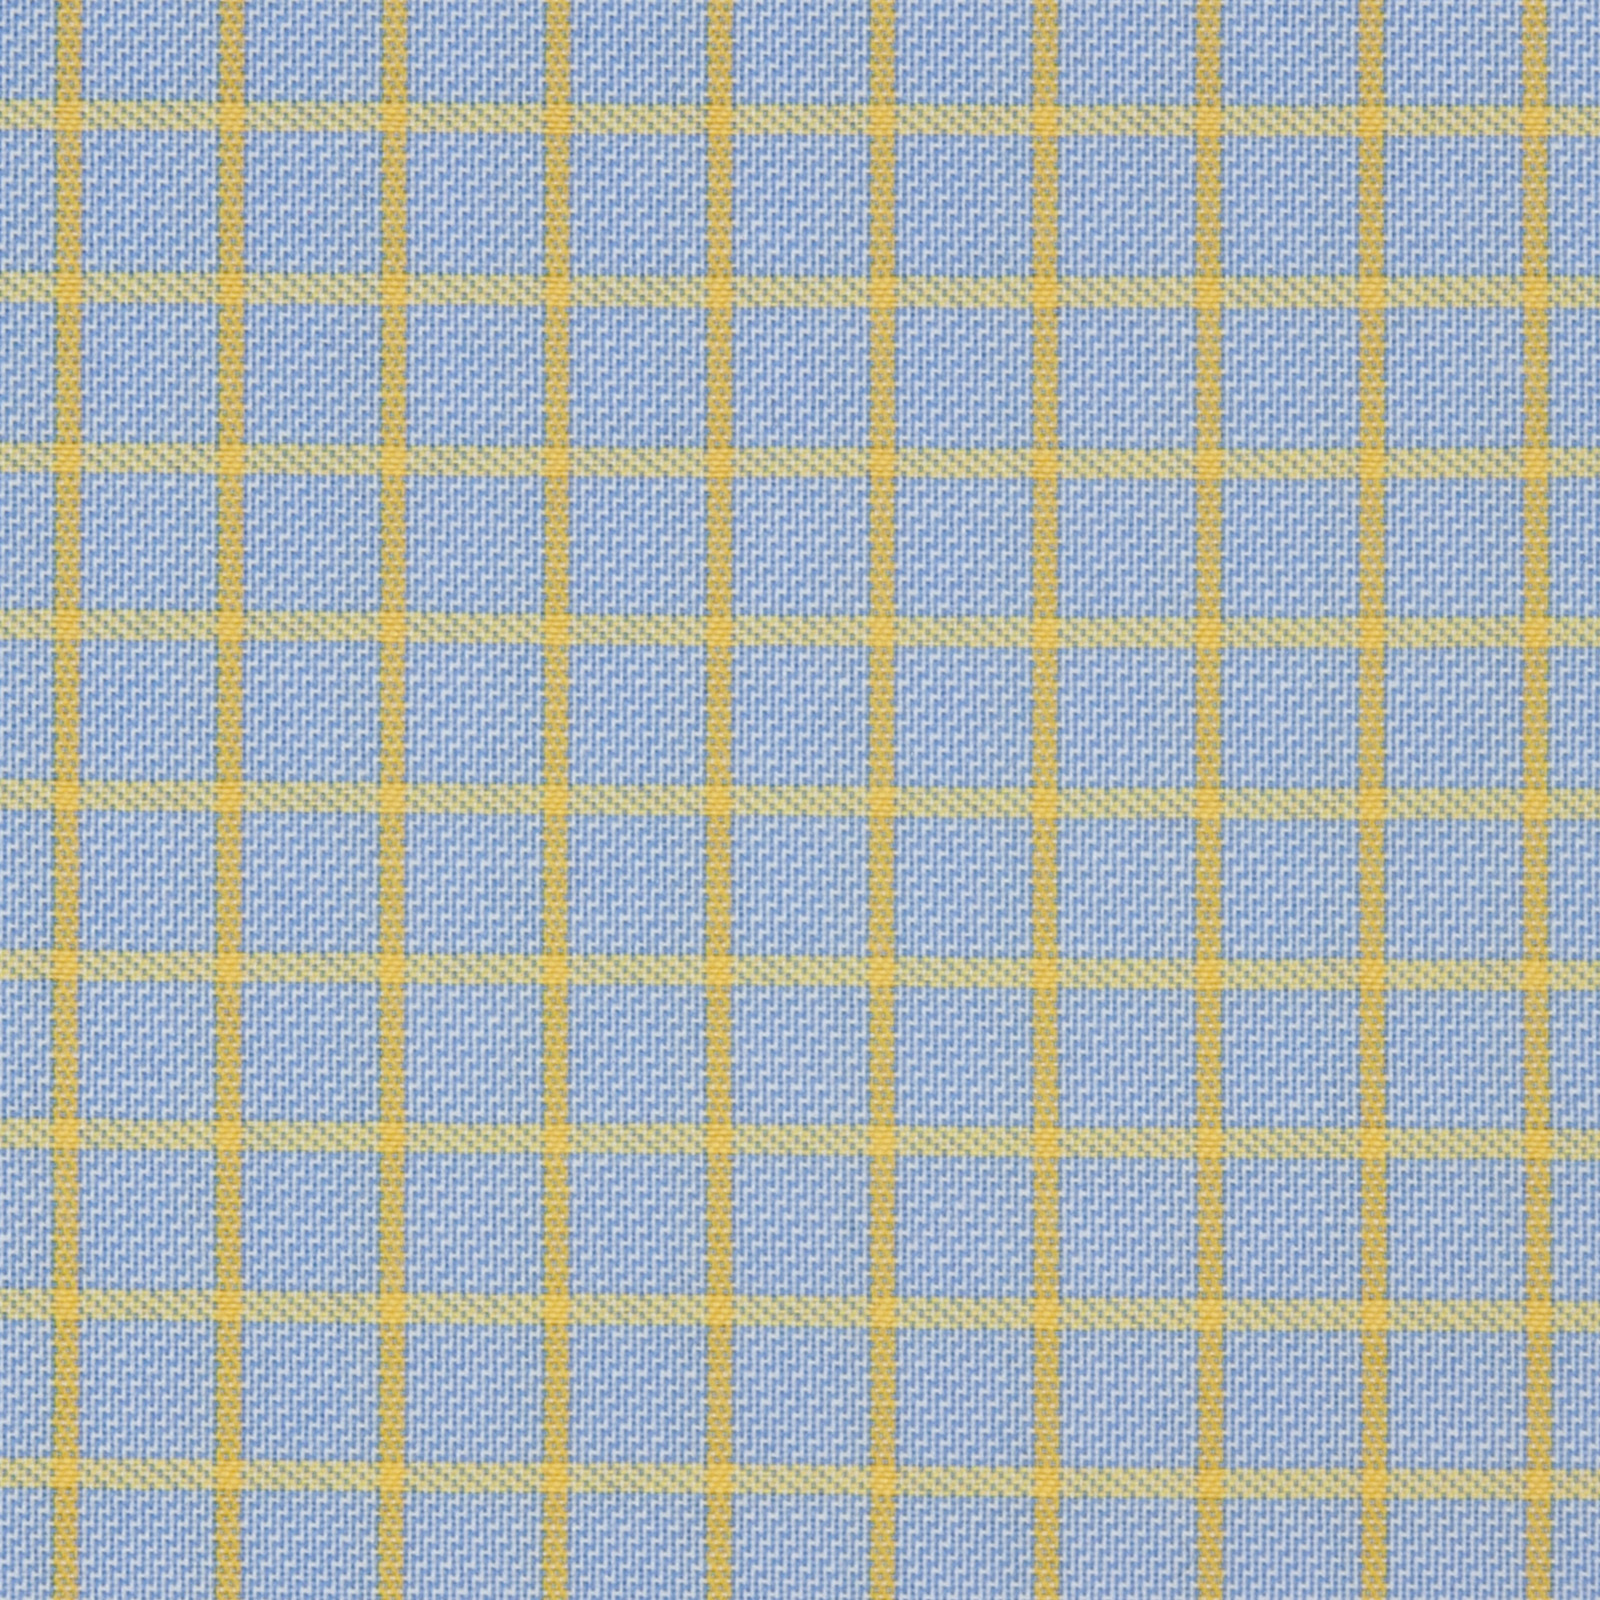 Buy tailor made shirts online - Arturo Collection - Yellow Check on Grey